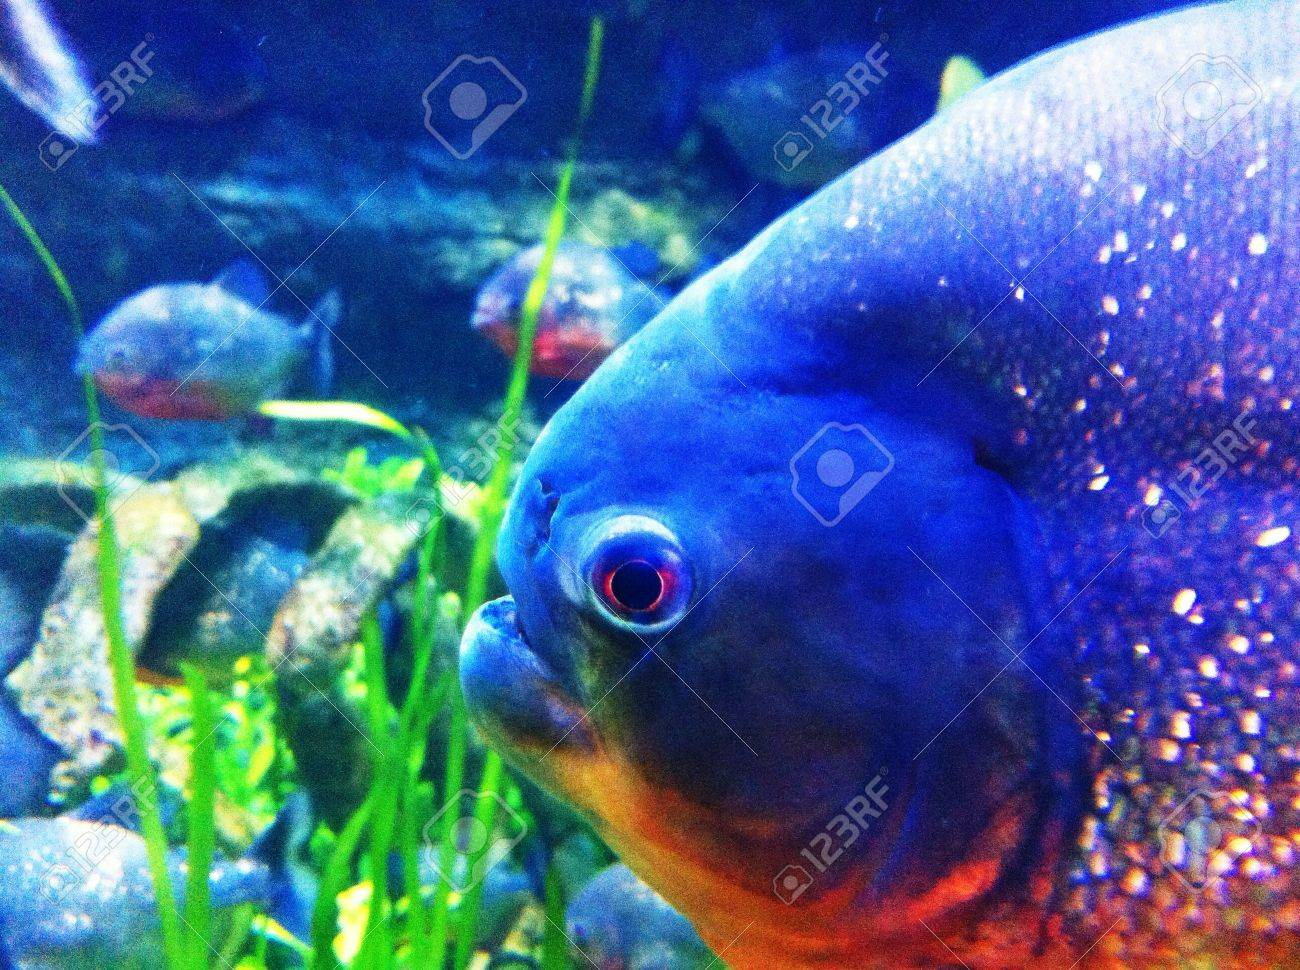 Freshwater Aquarium Fish In Dubai - Fish aquarium in dubai mall piranha in fish tank at dubai mall stock photo 26418139